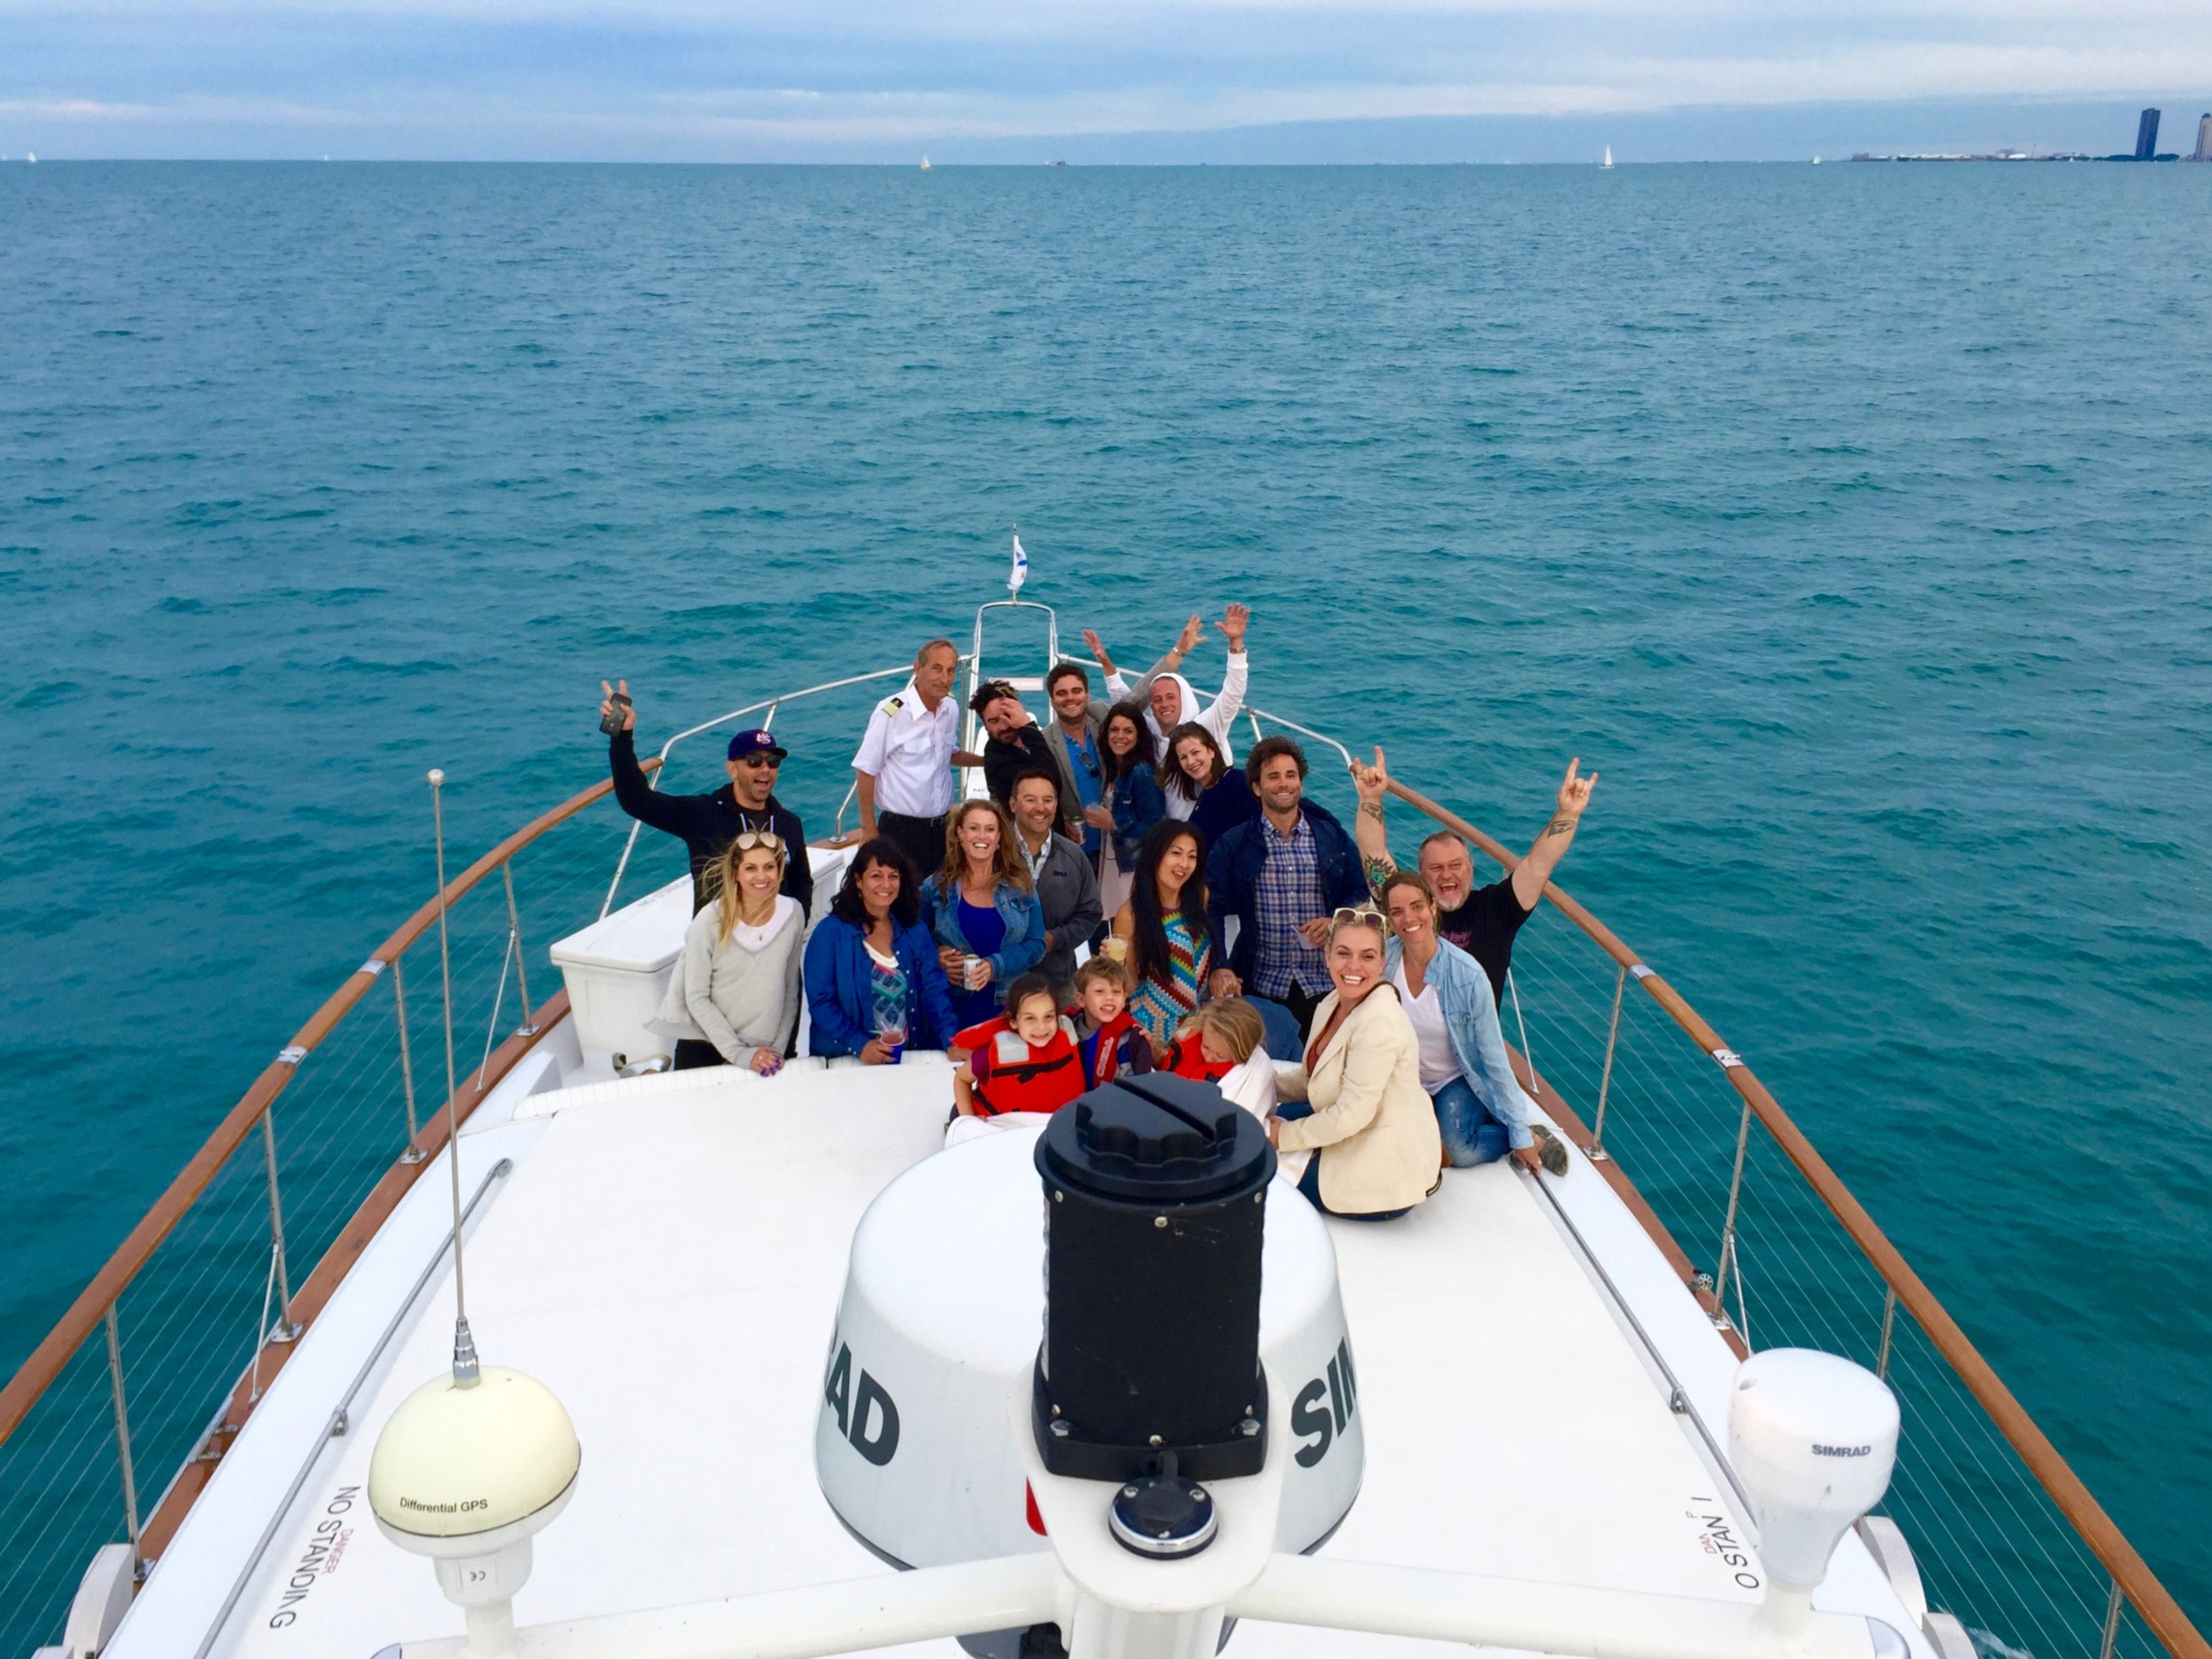 Adeline's Sea Moose is Chicago Private Yacht Rentals premier floating venue! Docked seasonally at Burnham Harbor near downtown Chicago, she is the perfect floating venue for all types of events and celebrations! Host your own private fireworks show! www.chicagoprivateyachtrentals.com #navypier #customevents #navypierfireworks #fireworks #lakemichigan #burnhamharbor #searstower #docent #johnhancock #adelinesseamoose #pirvateyacht #floatingbar #floatingvenue #rivertours #architecturetours